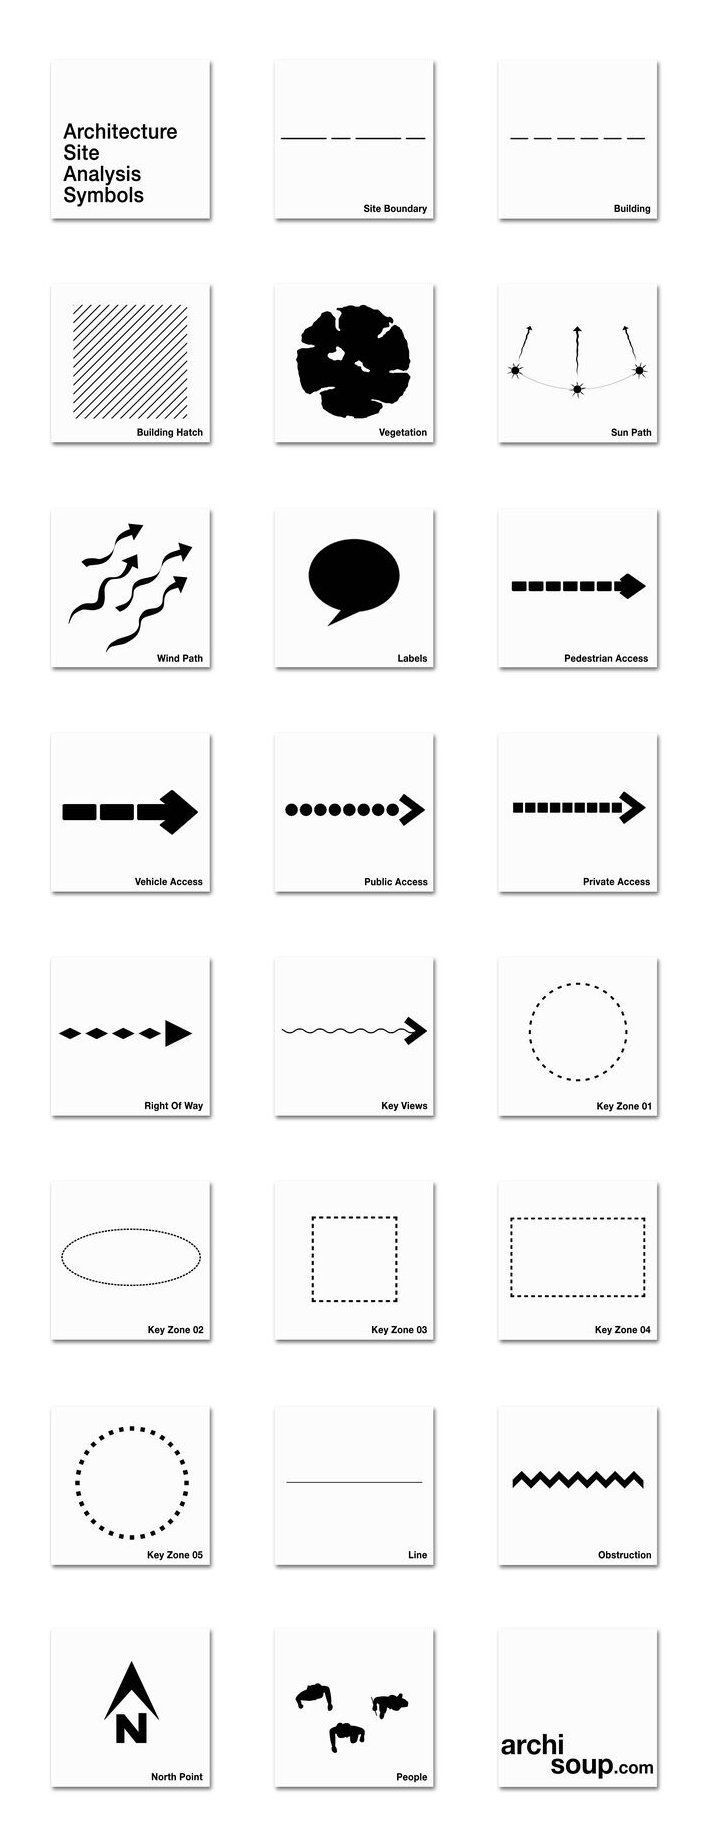 Architecture Site Analysis Diagrams And Symbols - One Of The - #architecture